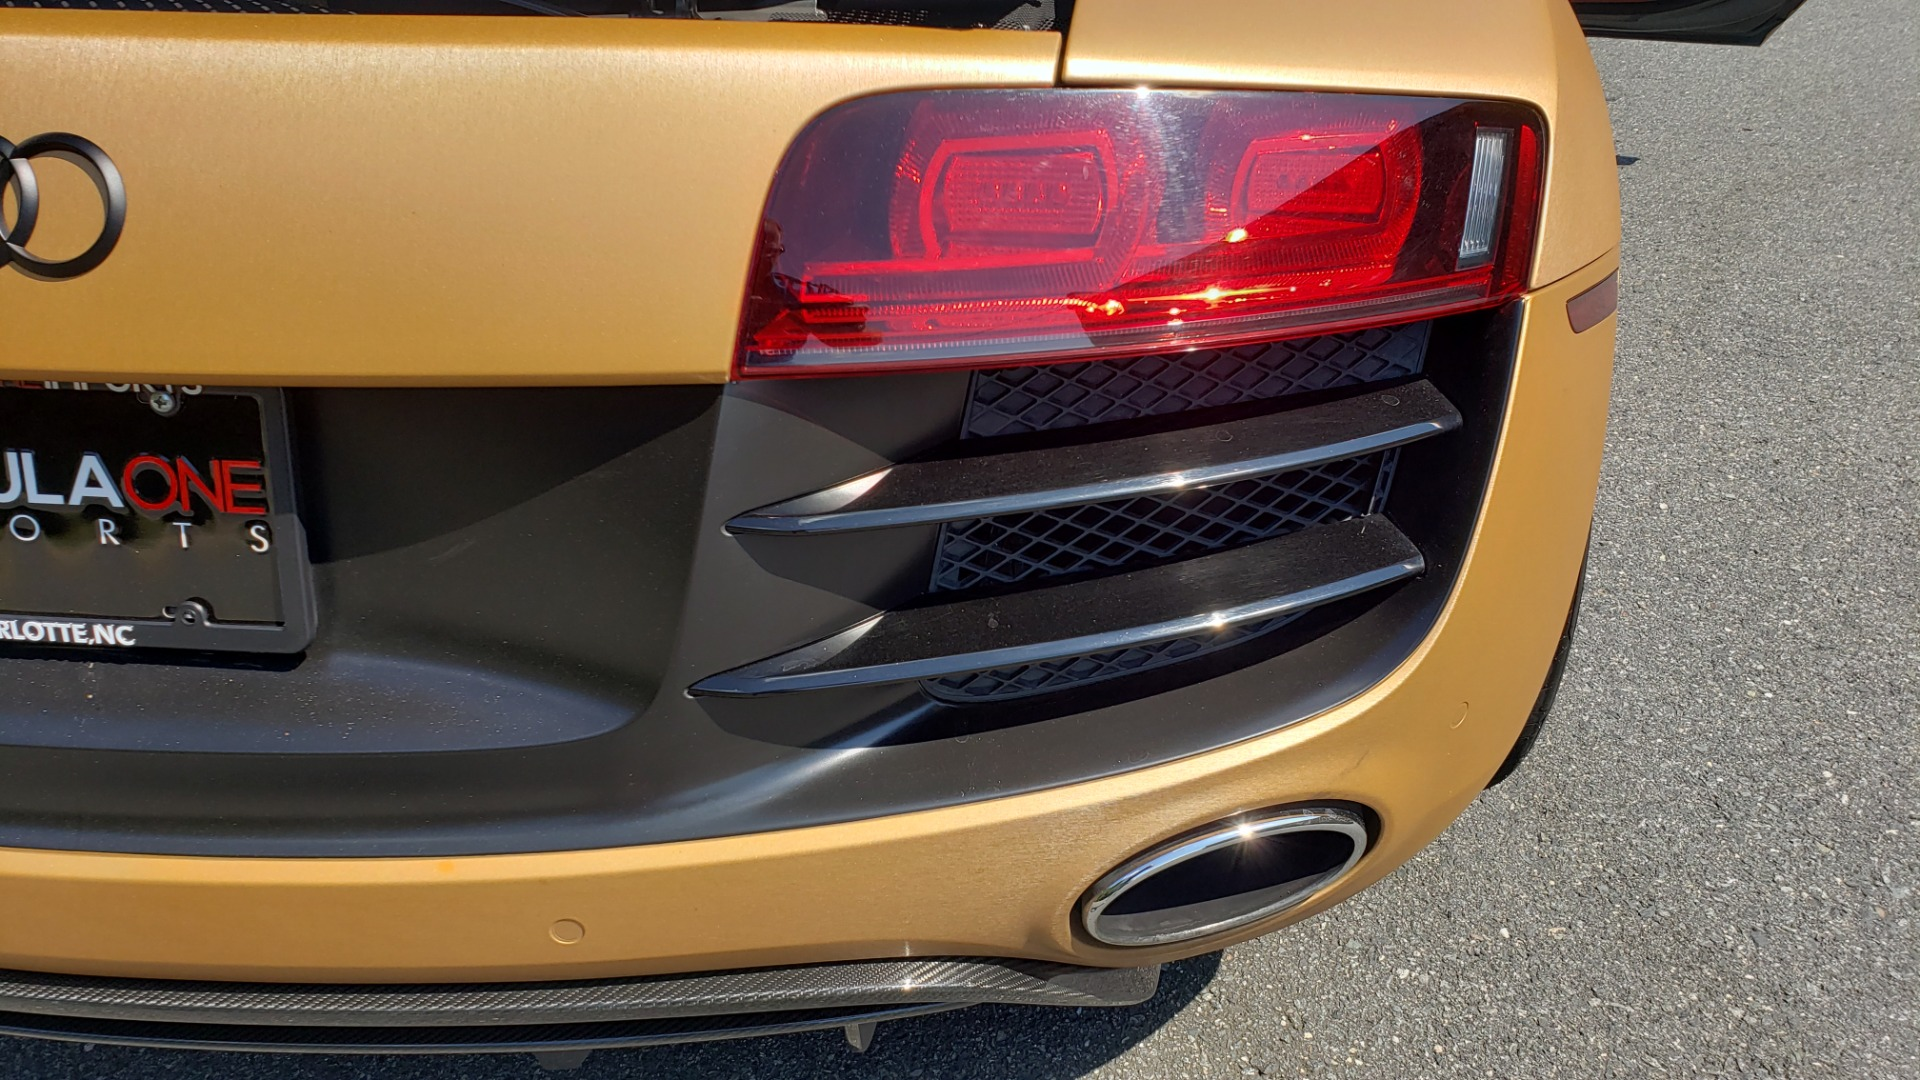 Used 2012 Audi R8 V10 5.2L / CUST WRAP BRUSHED BRONZE / NAV / B&O SOUND / CUST 19IN WHLS for sale $79,999 at Formula Imports in Charlotte NC 28227 22